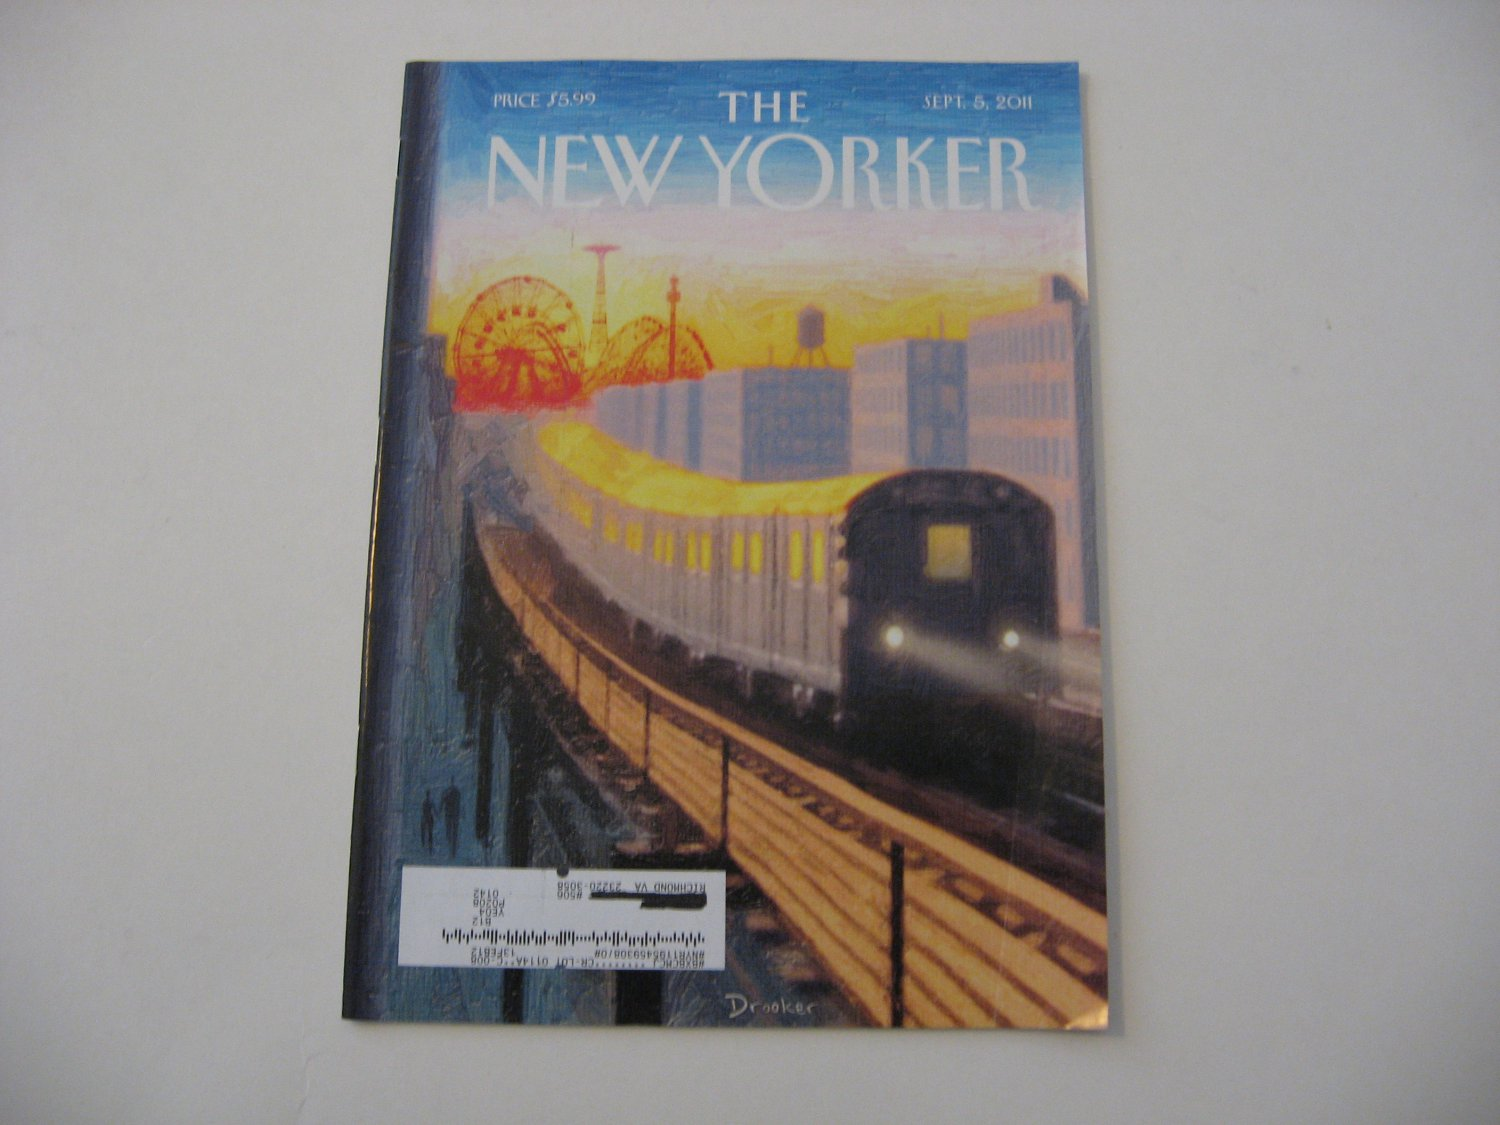 The New Yorker Magazine - Sept. 5, 2011